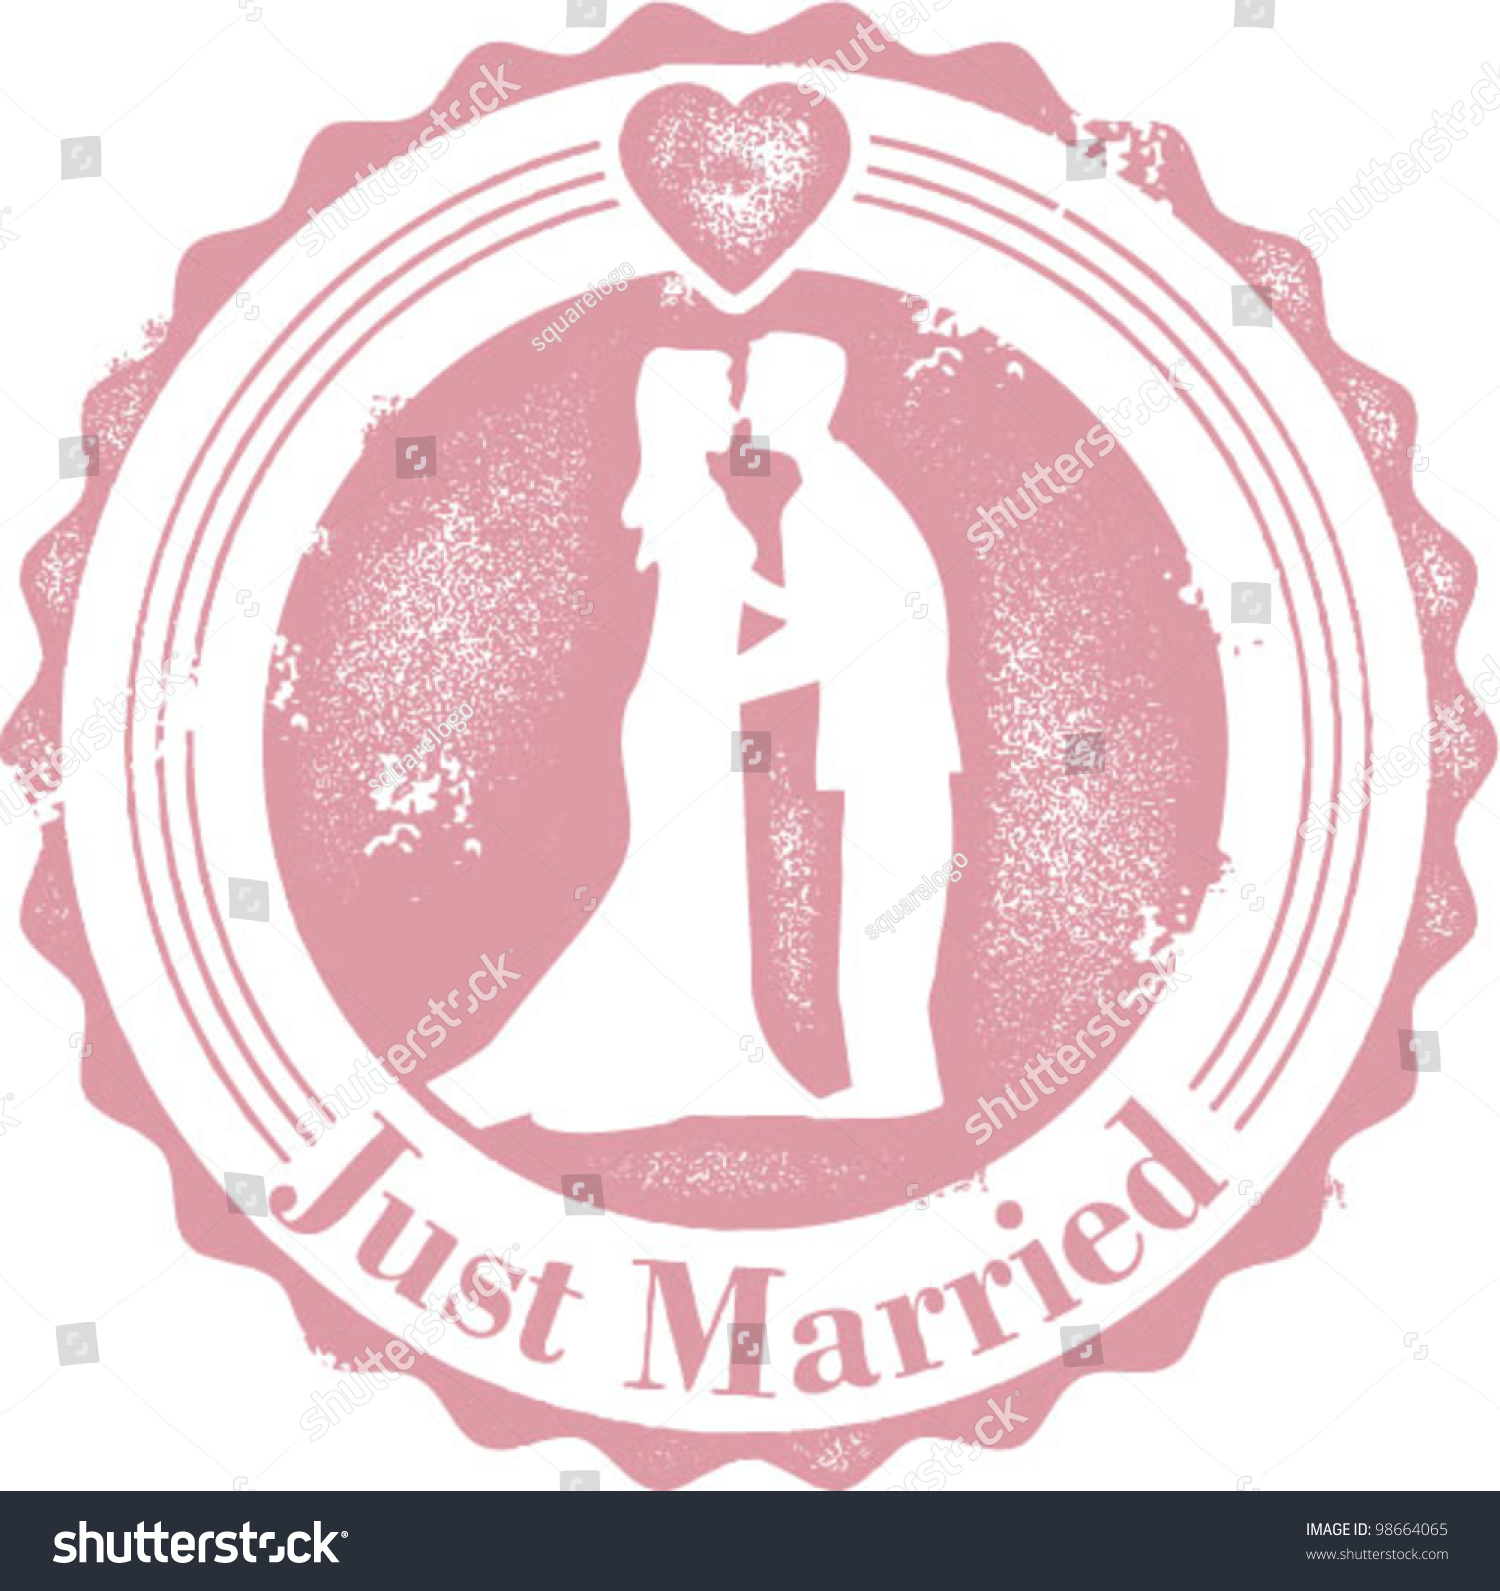 Just Married Wedding Couple Stamp Stock Vector (Royalty Free ...